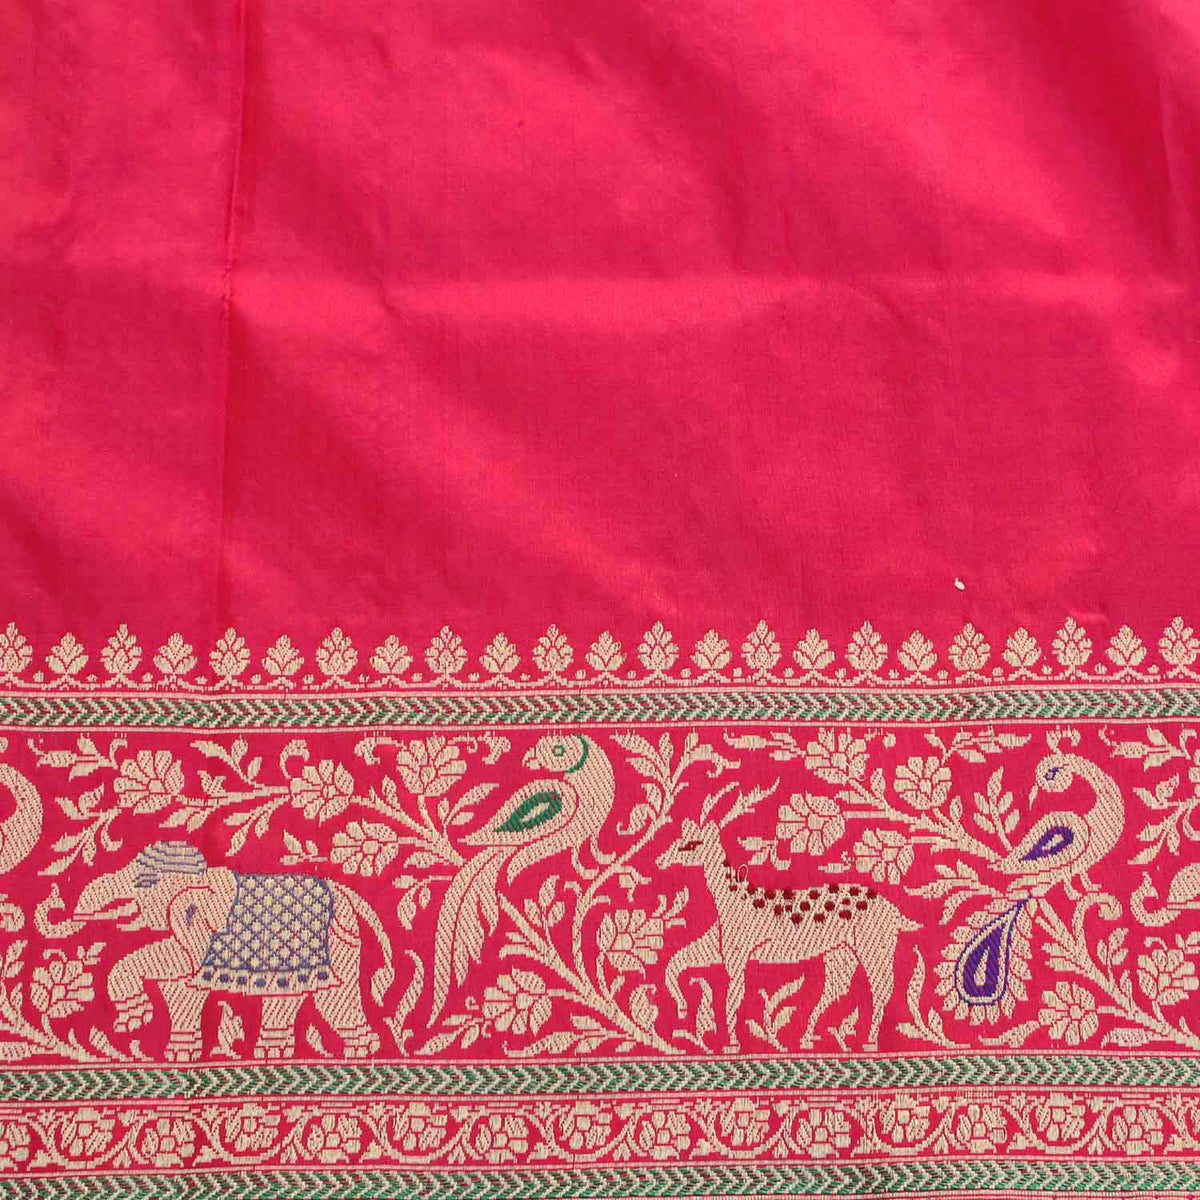 Red-Indian Pink Pure Katan Silk Banarasi Handloom Saree - Tilfi - 5